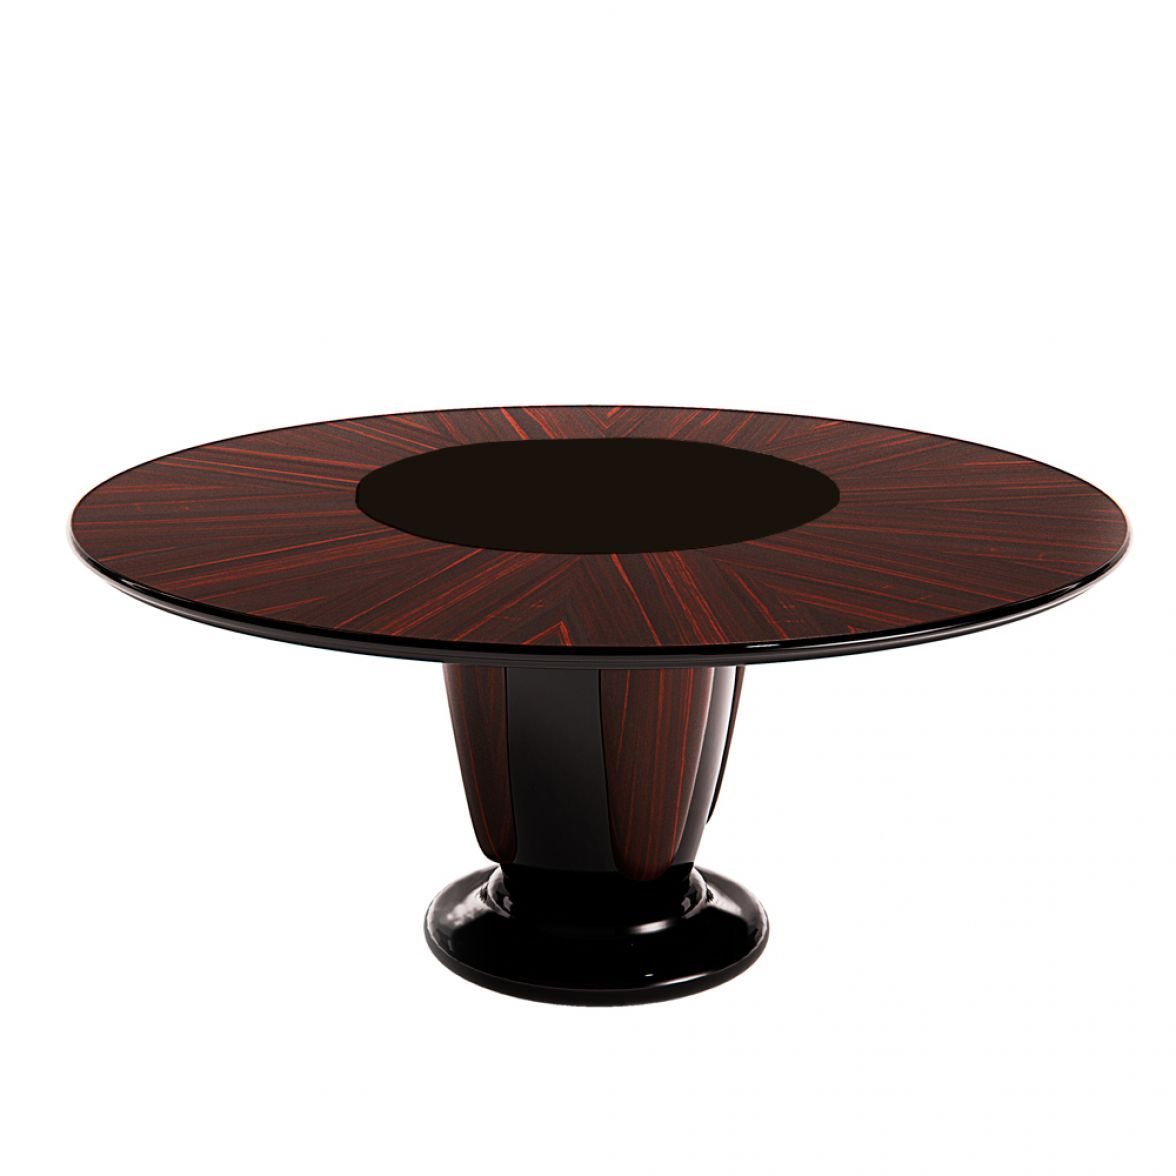 KONG  table